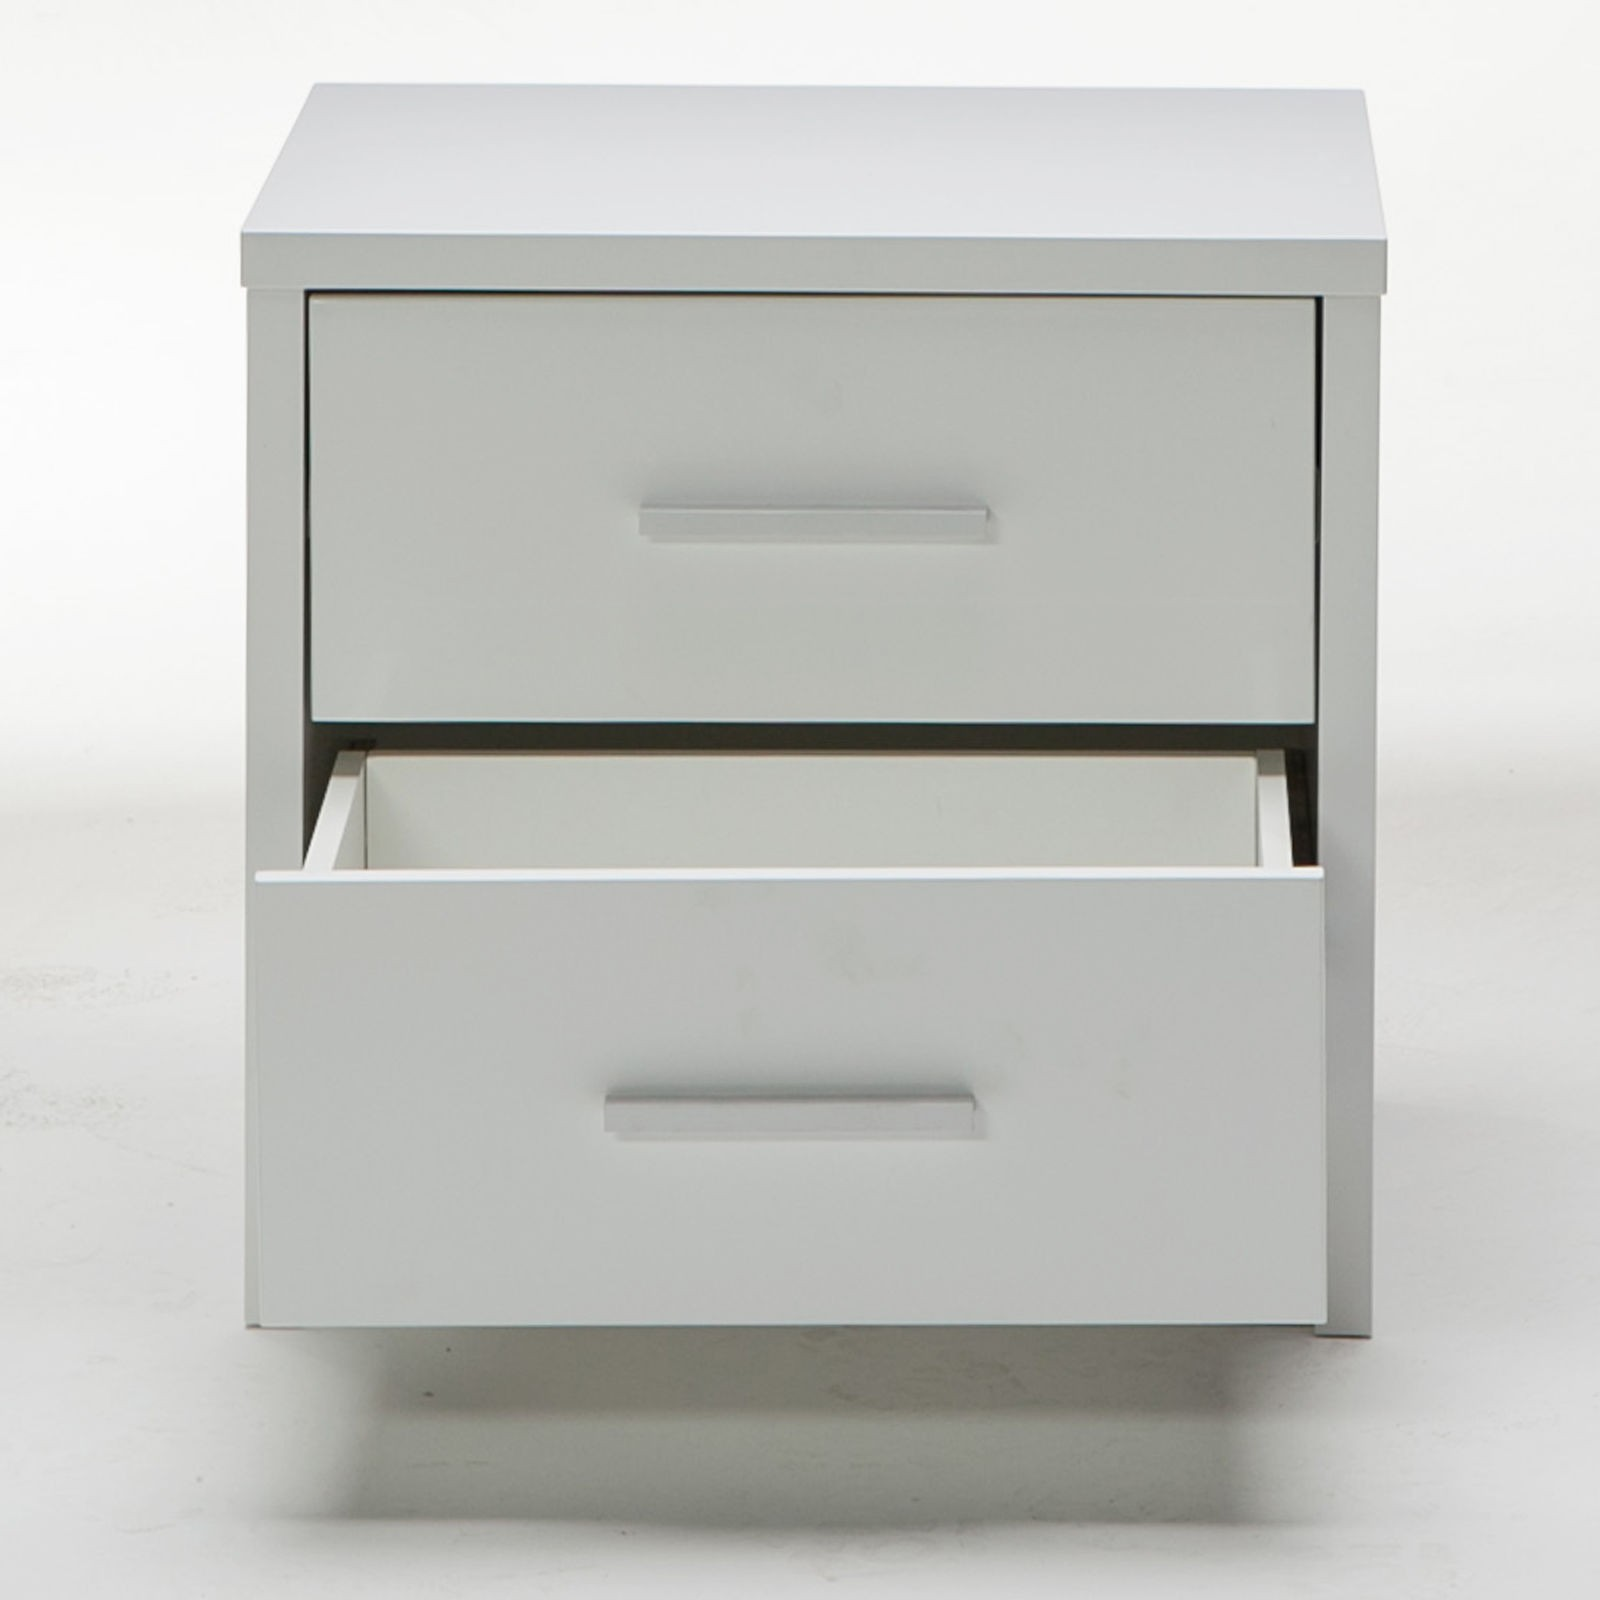 Venus Brand New White High Gloss Bedside Table Night Stand Storage Drawers